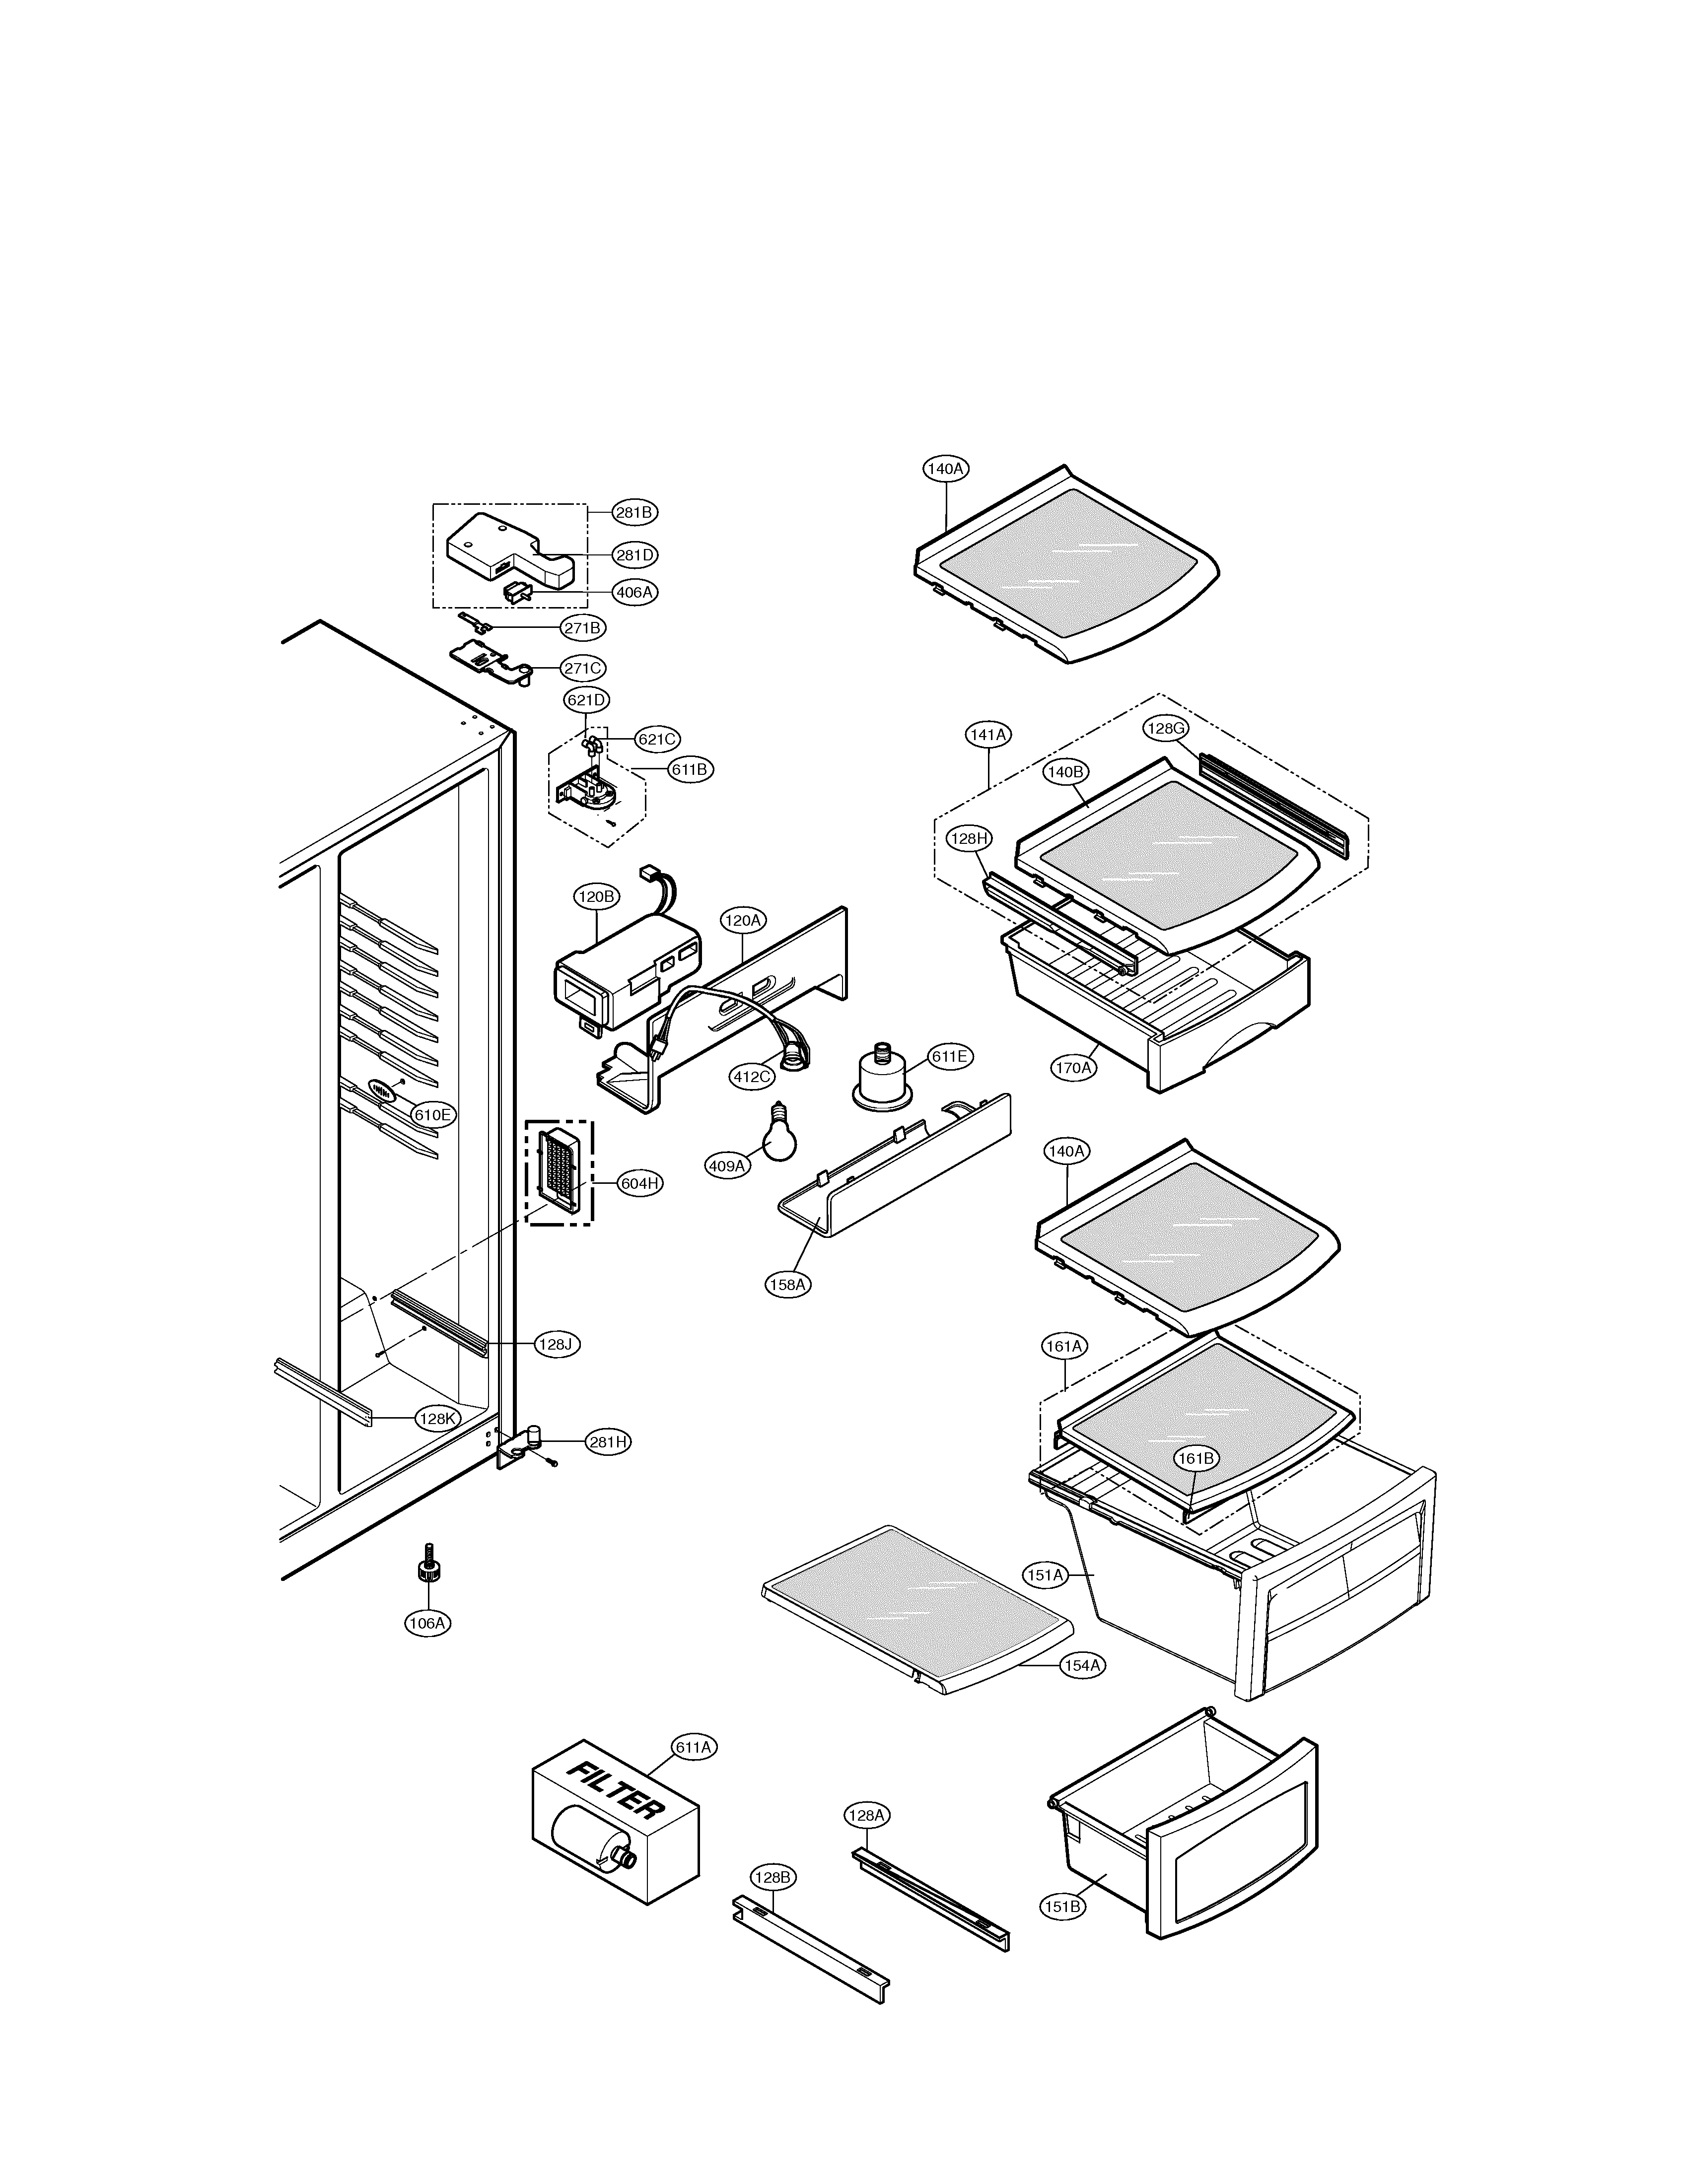 LG LSC27910ST refrigerator compartment diagram